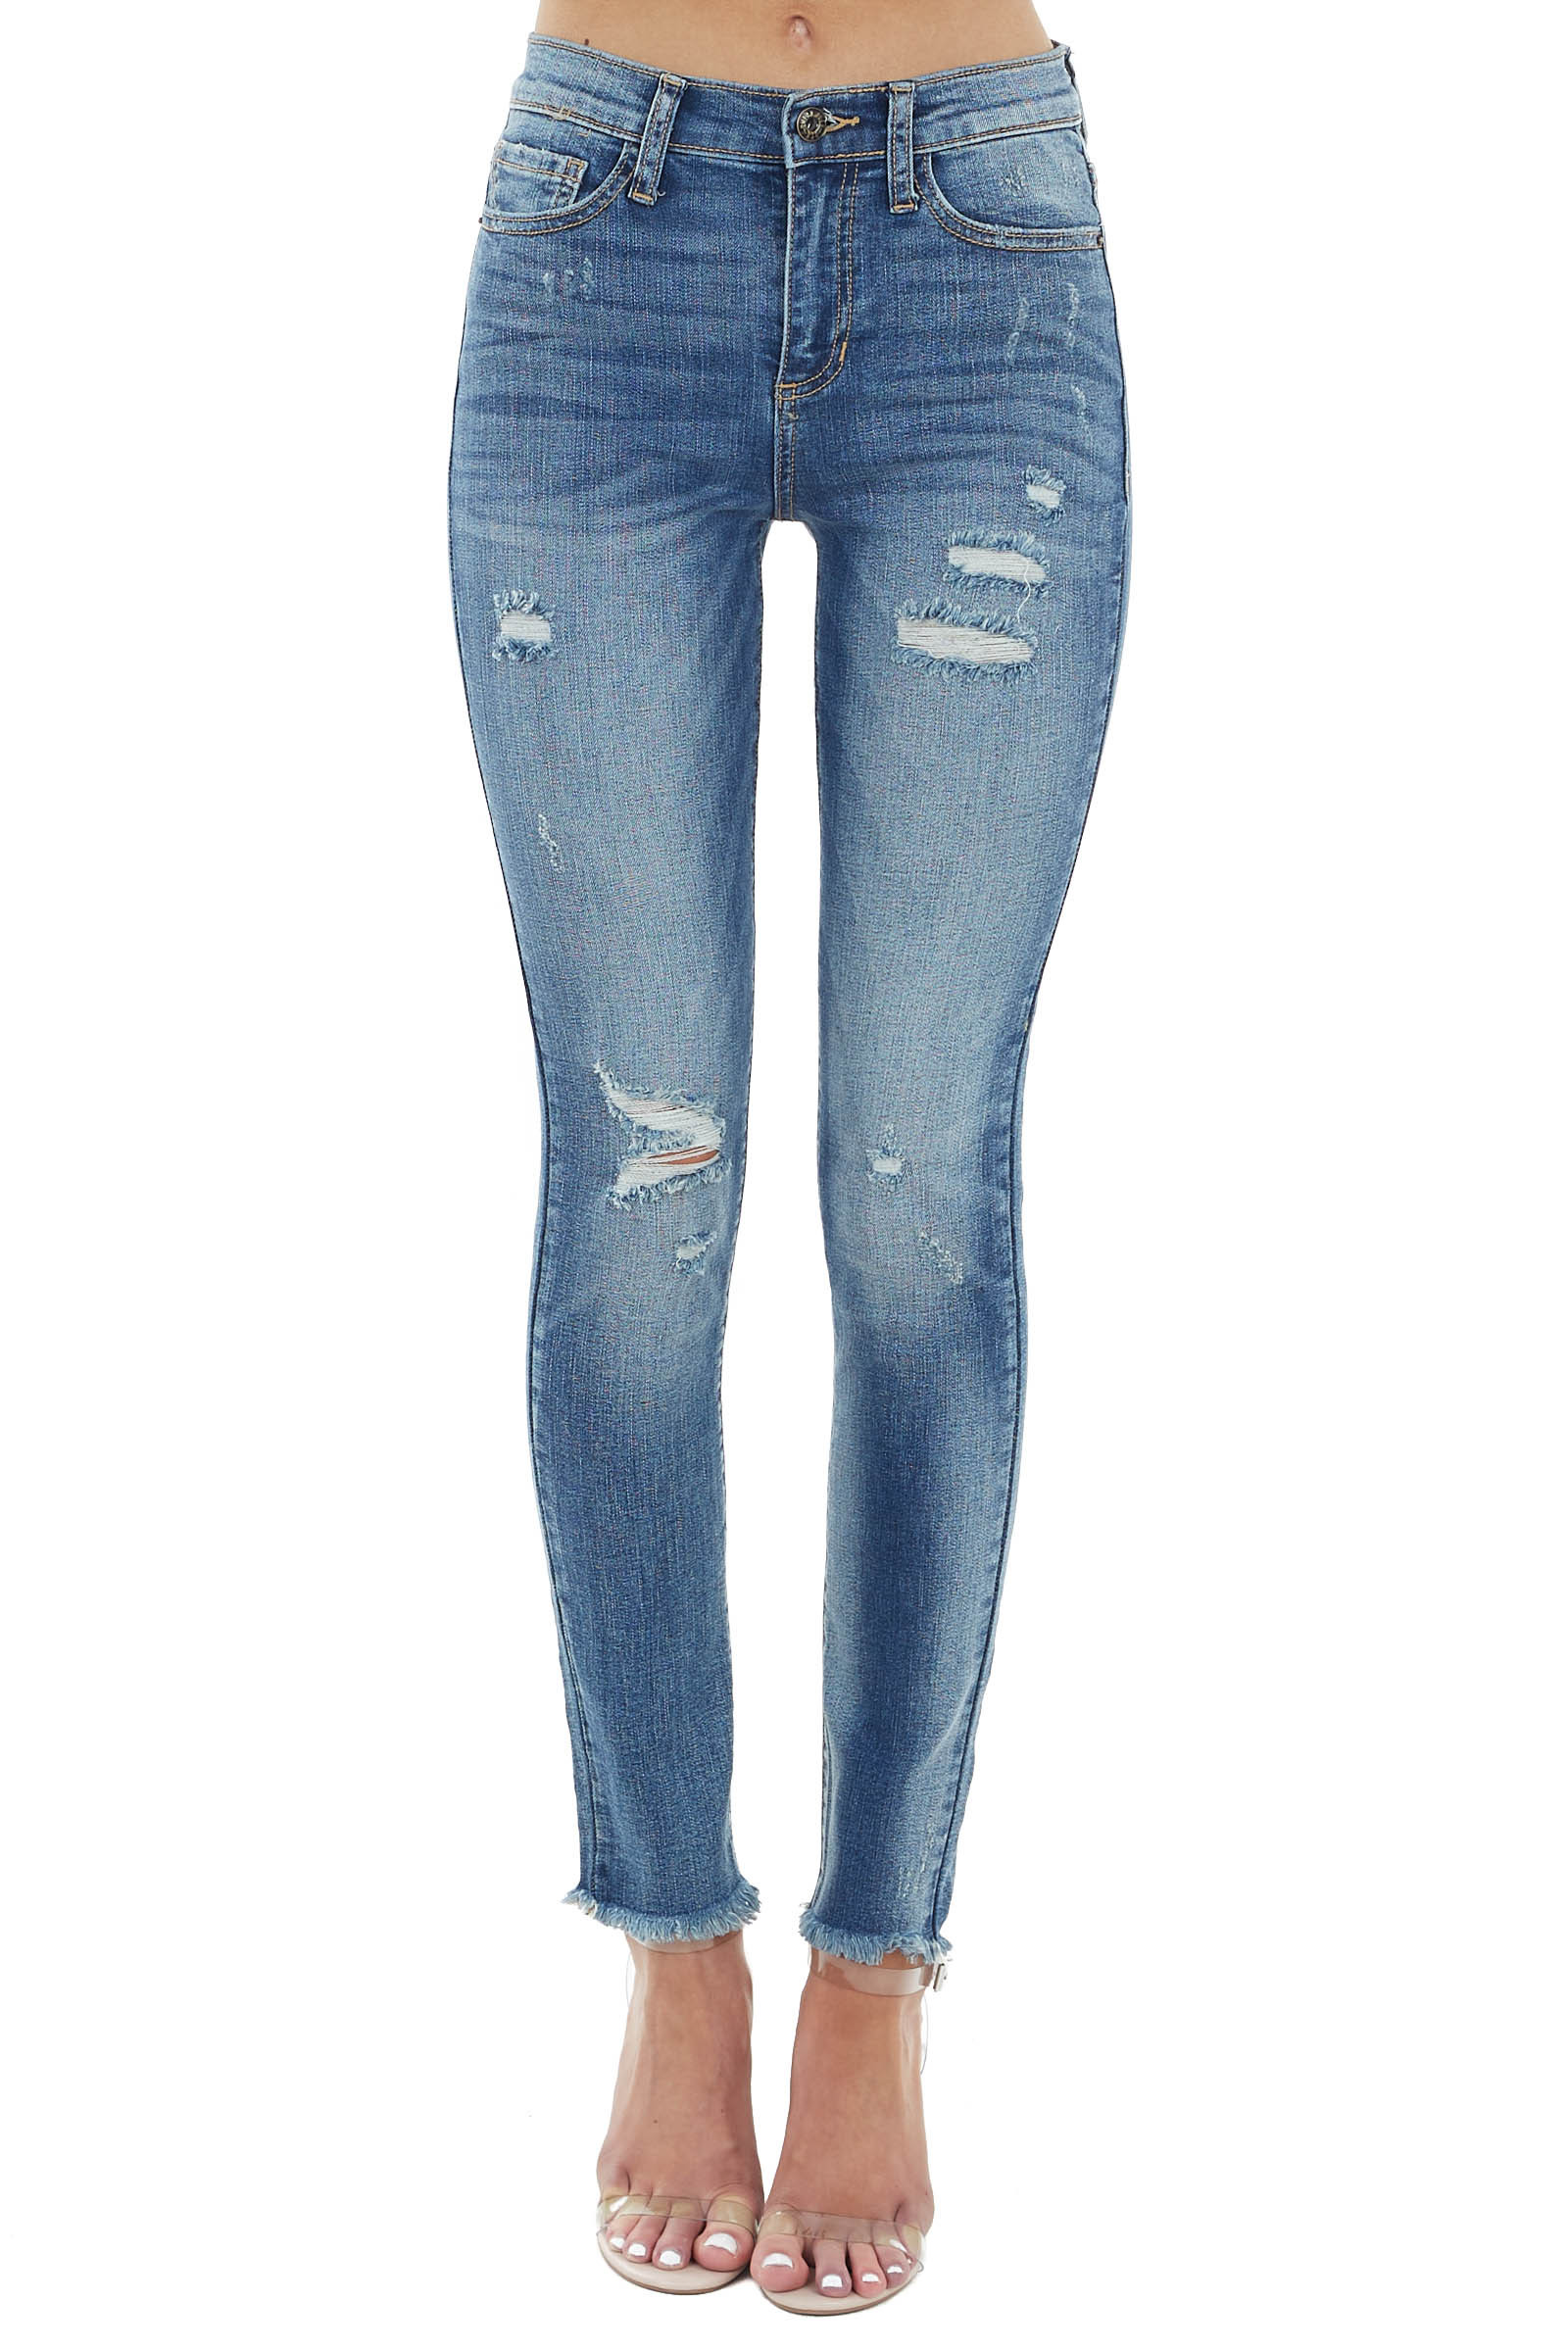 Medium Wash Mid Rise Jeans with Frayed Hem and Distressing